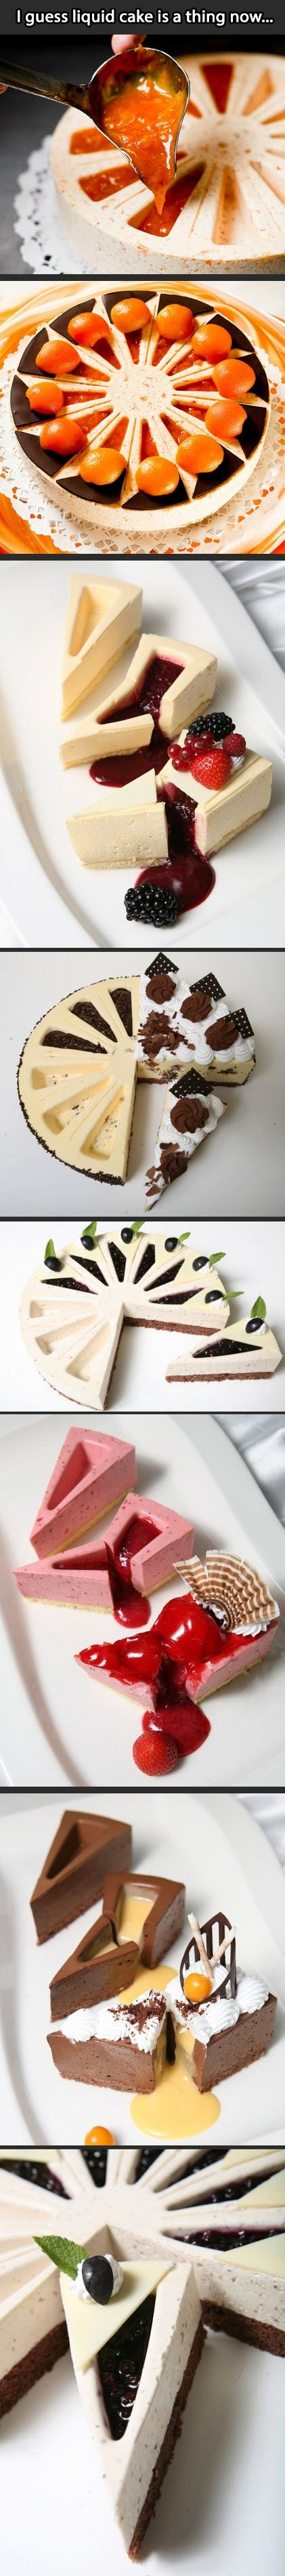 Cake on the outside, liquid on the inside! Does anybody know how to make this.